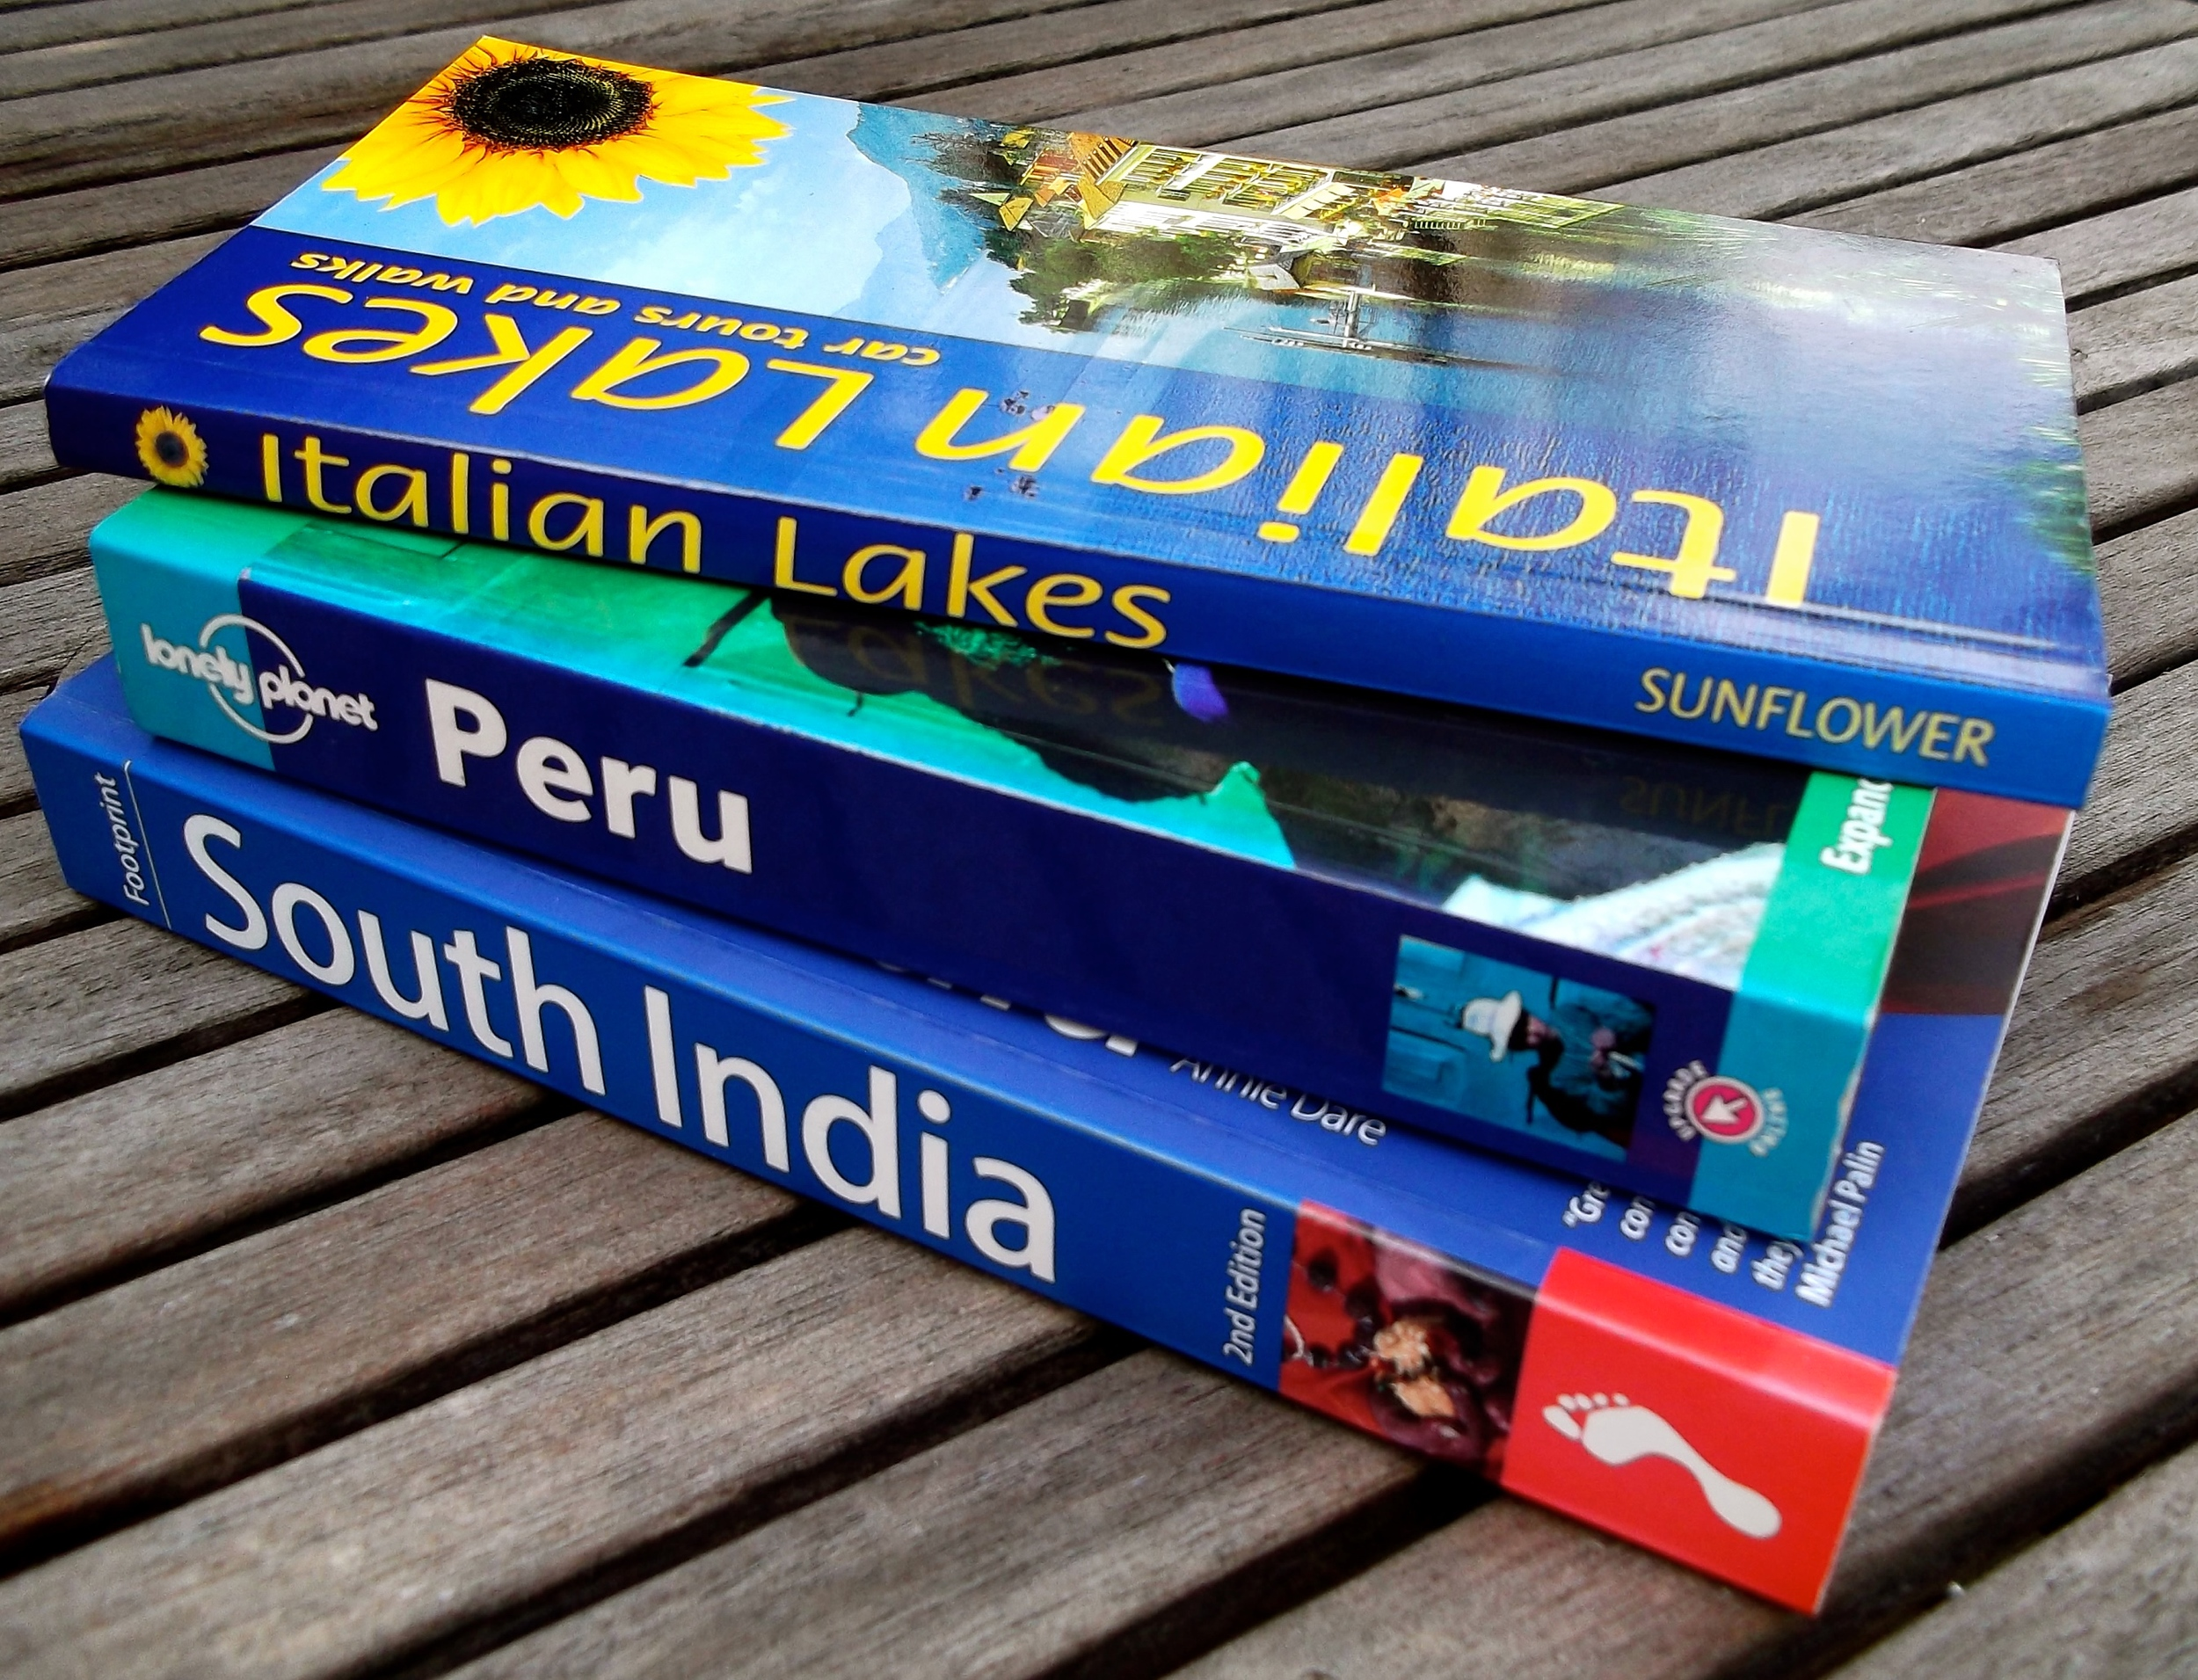 MY TOP 3 DESTINATIONS: KERALA, PERU & THE ITALIAN LAKES